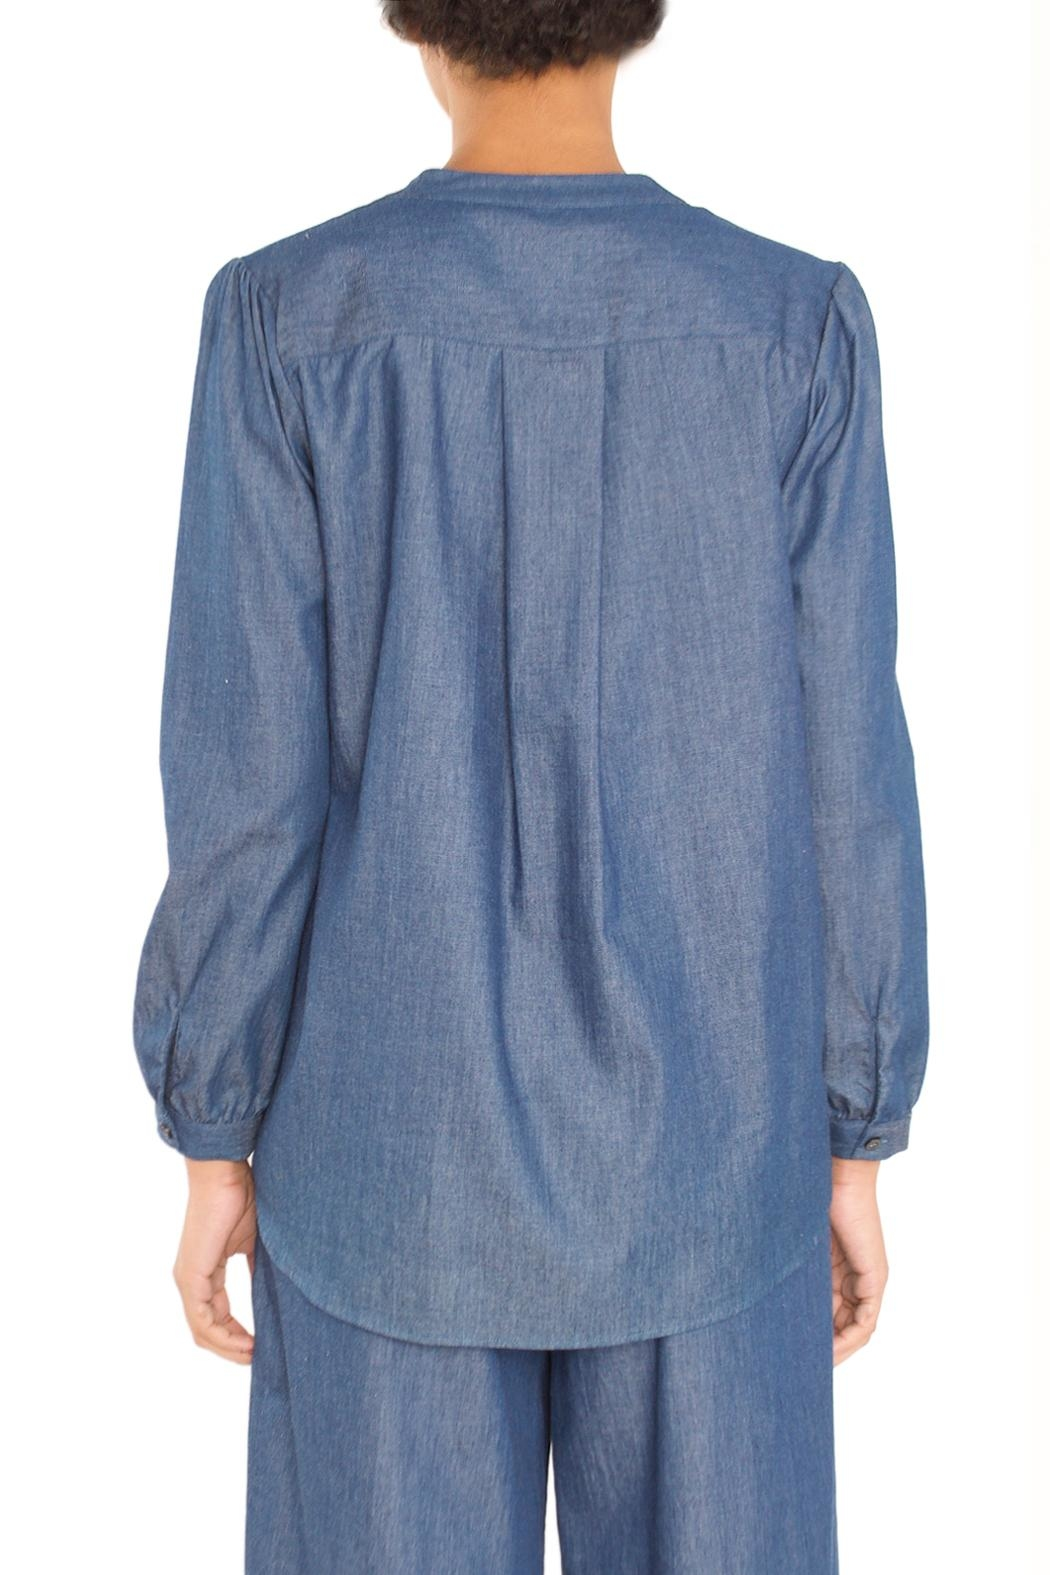 TYLHO Chambray Henley Shirt - Side Cropped Image